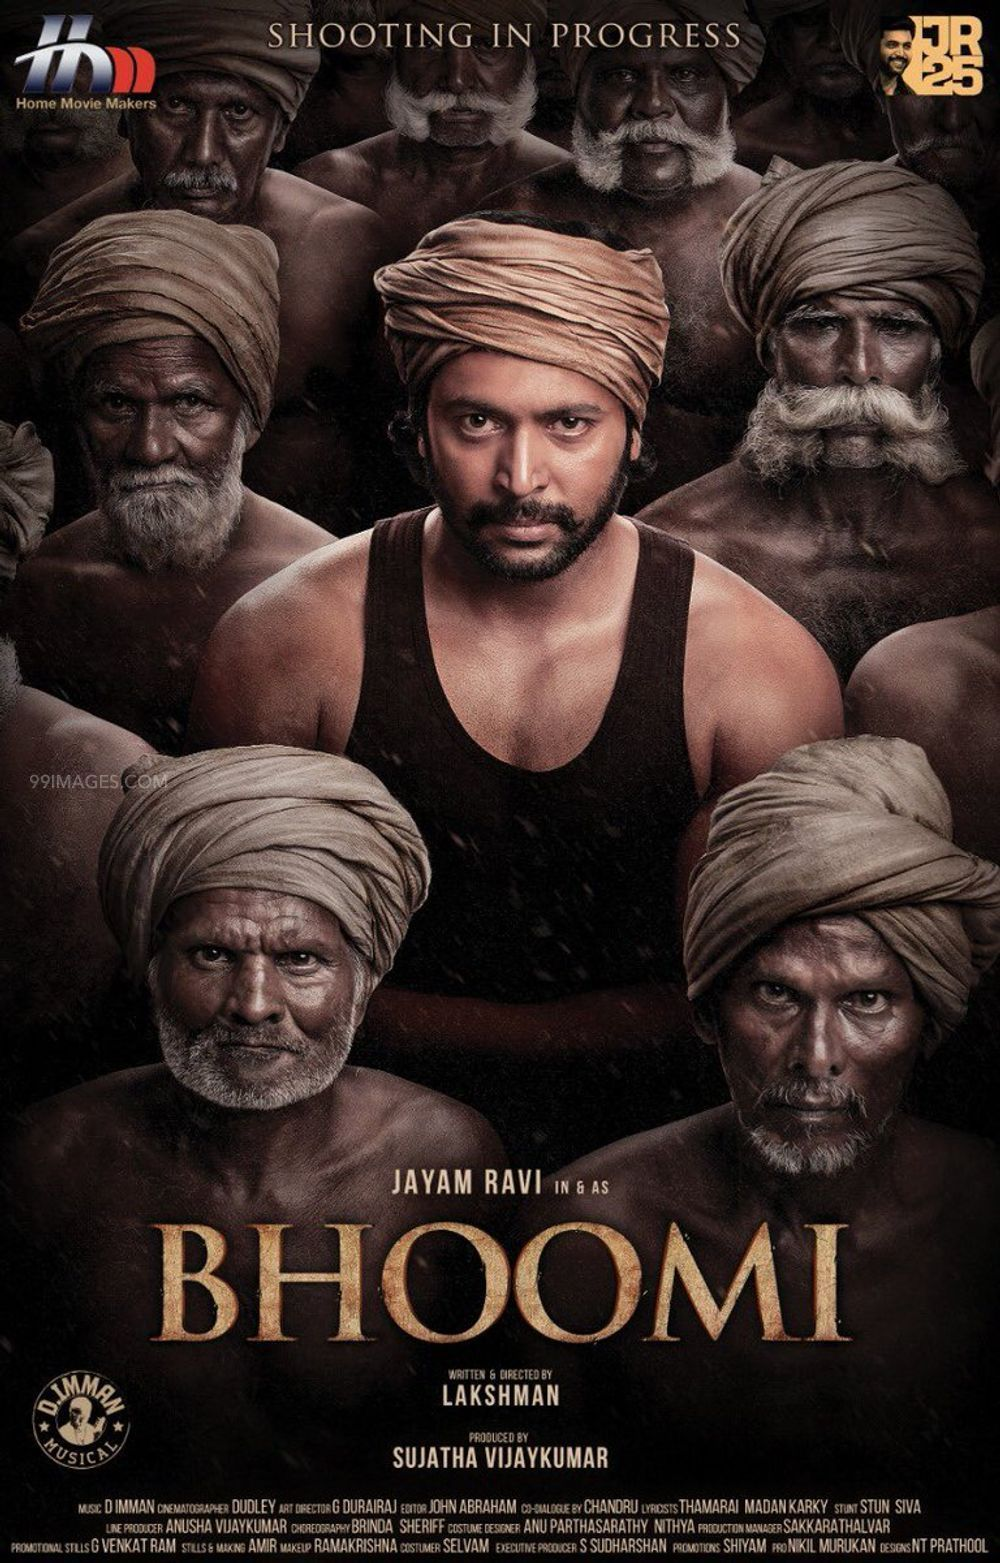 Bhoomi Movie Latest HD Photos, Posters & Wallpapers Download (1080p, 4K)